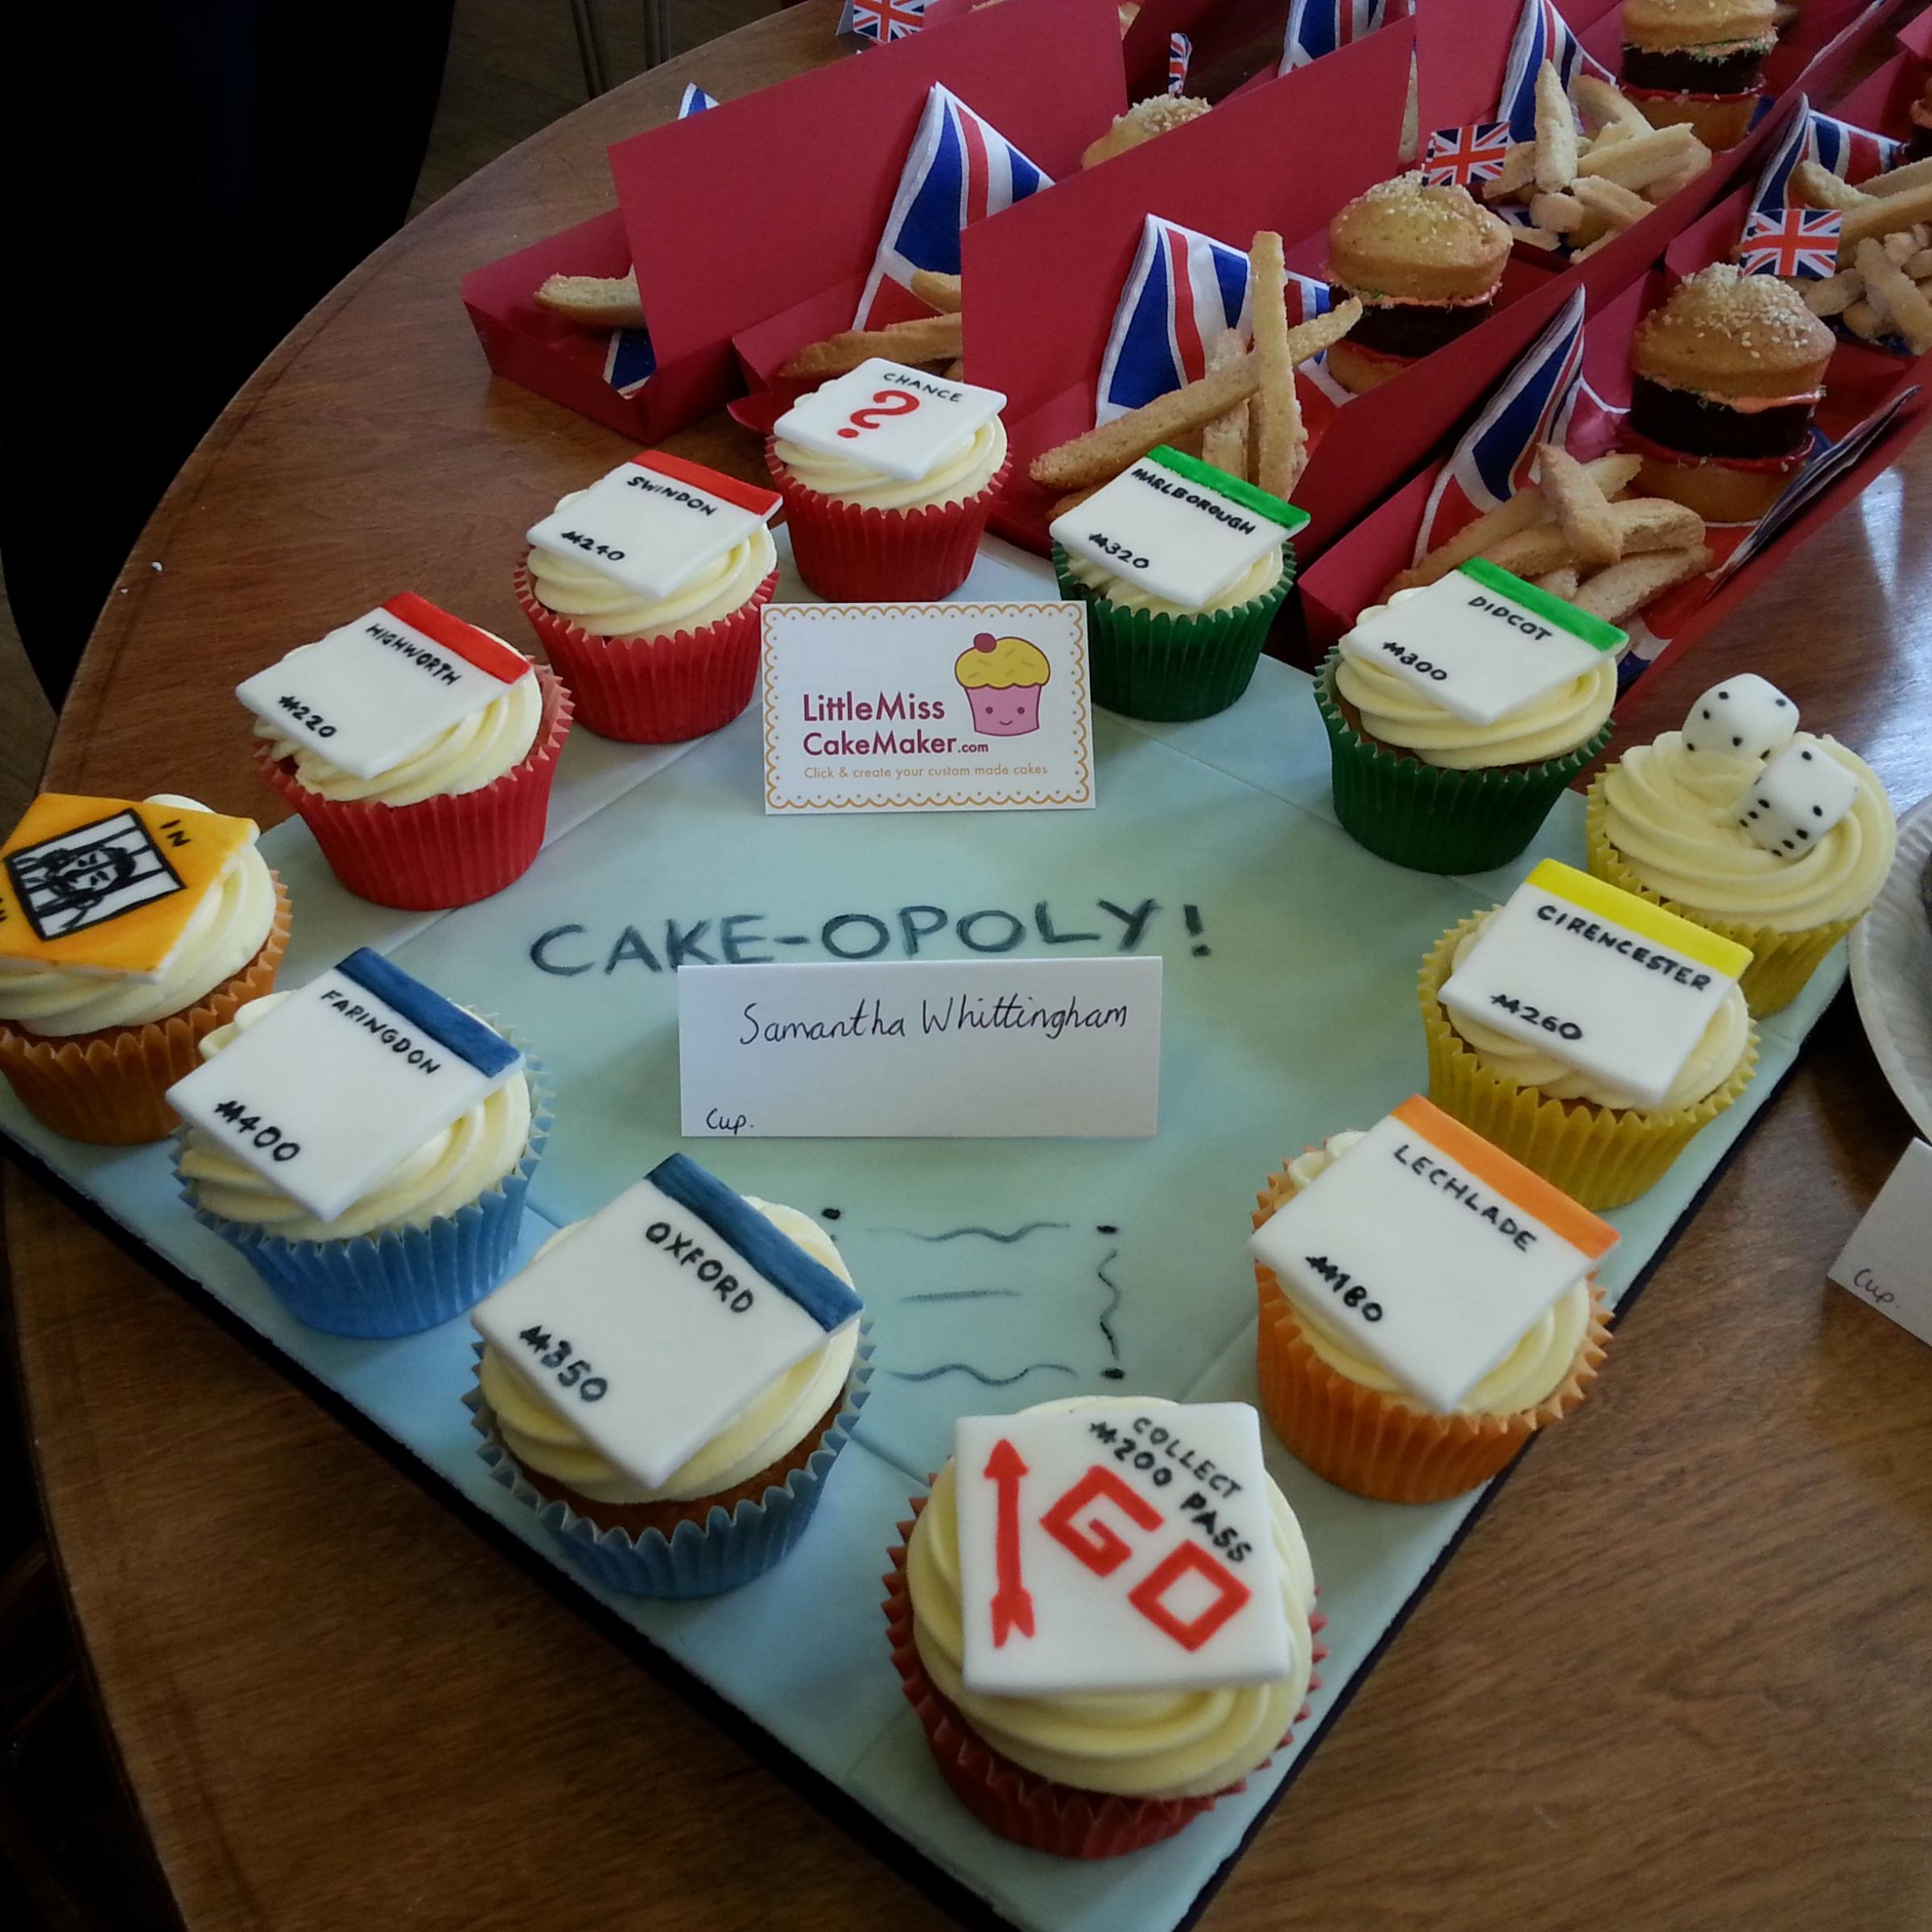 Sam's winning 'Cakeopoly' entry.